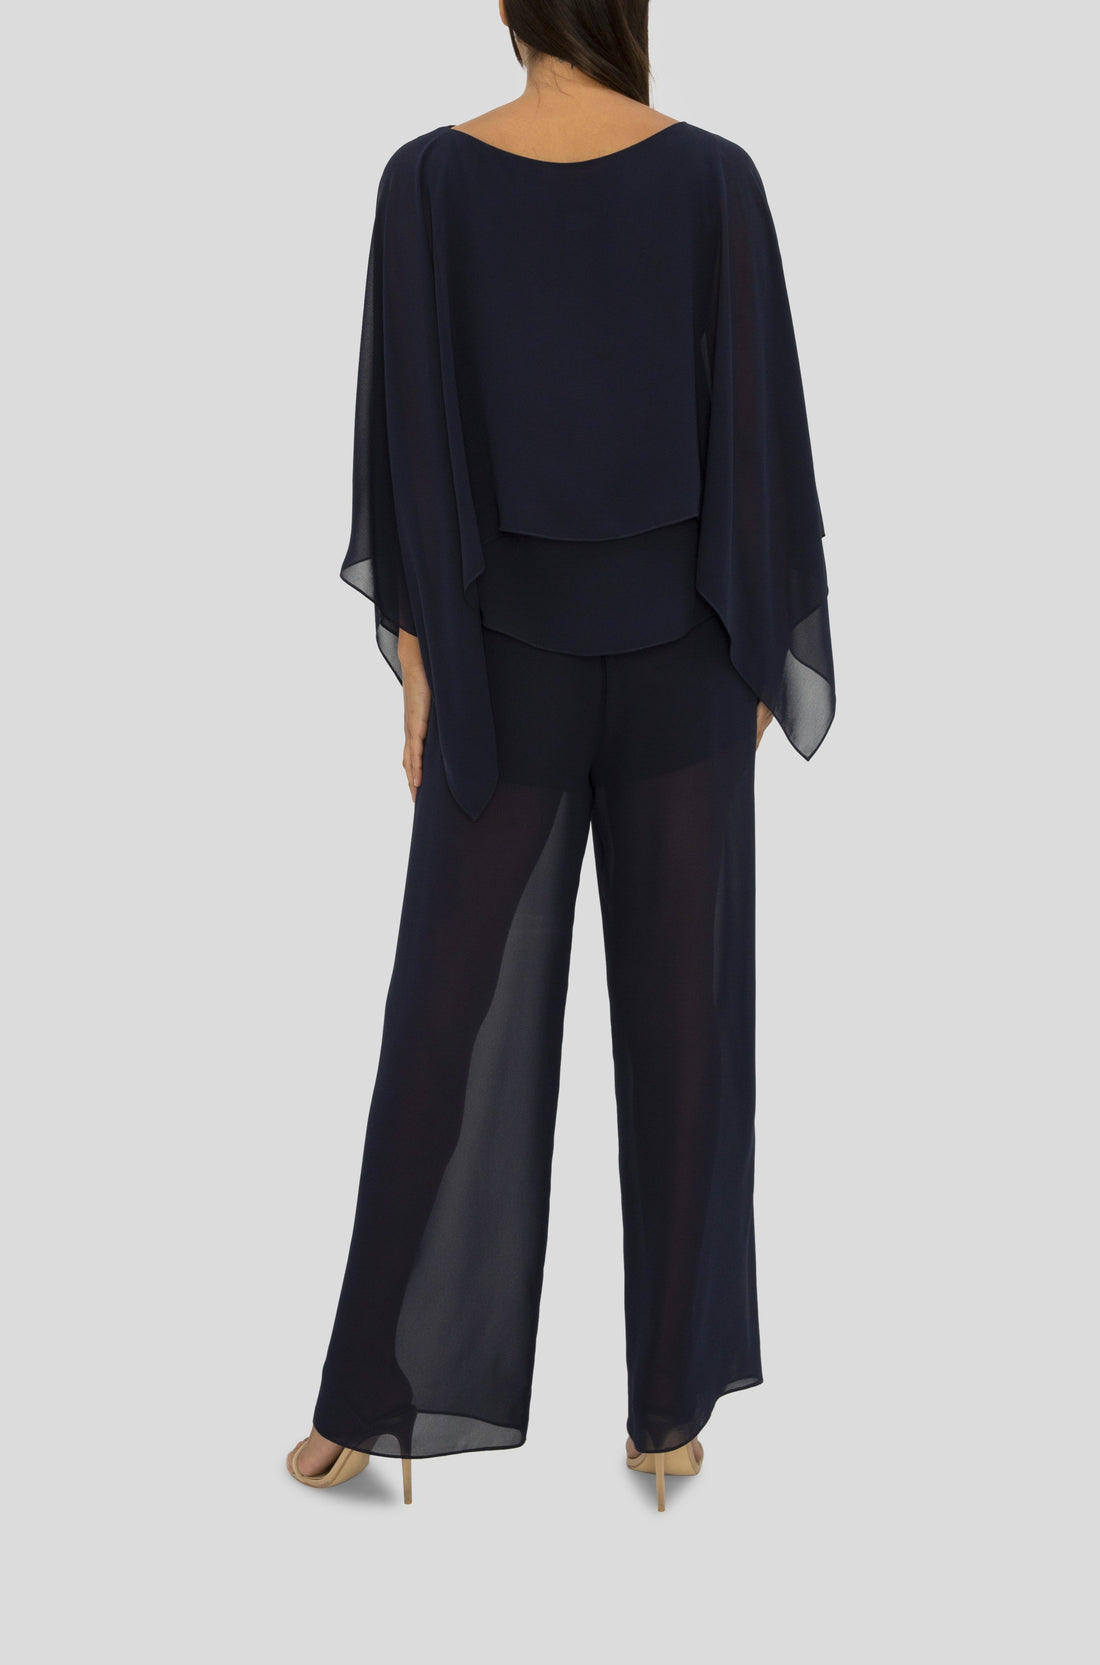 NAVY WHIMSICAL PANT